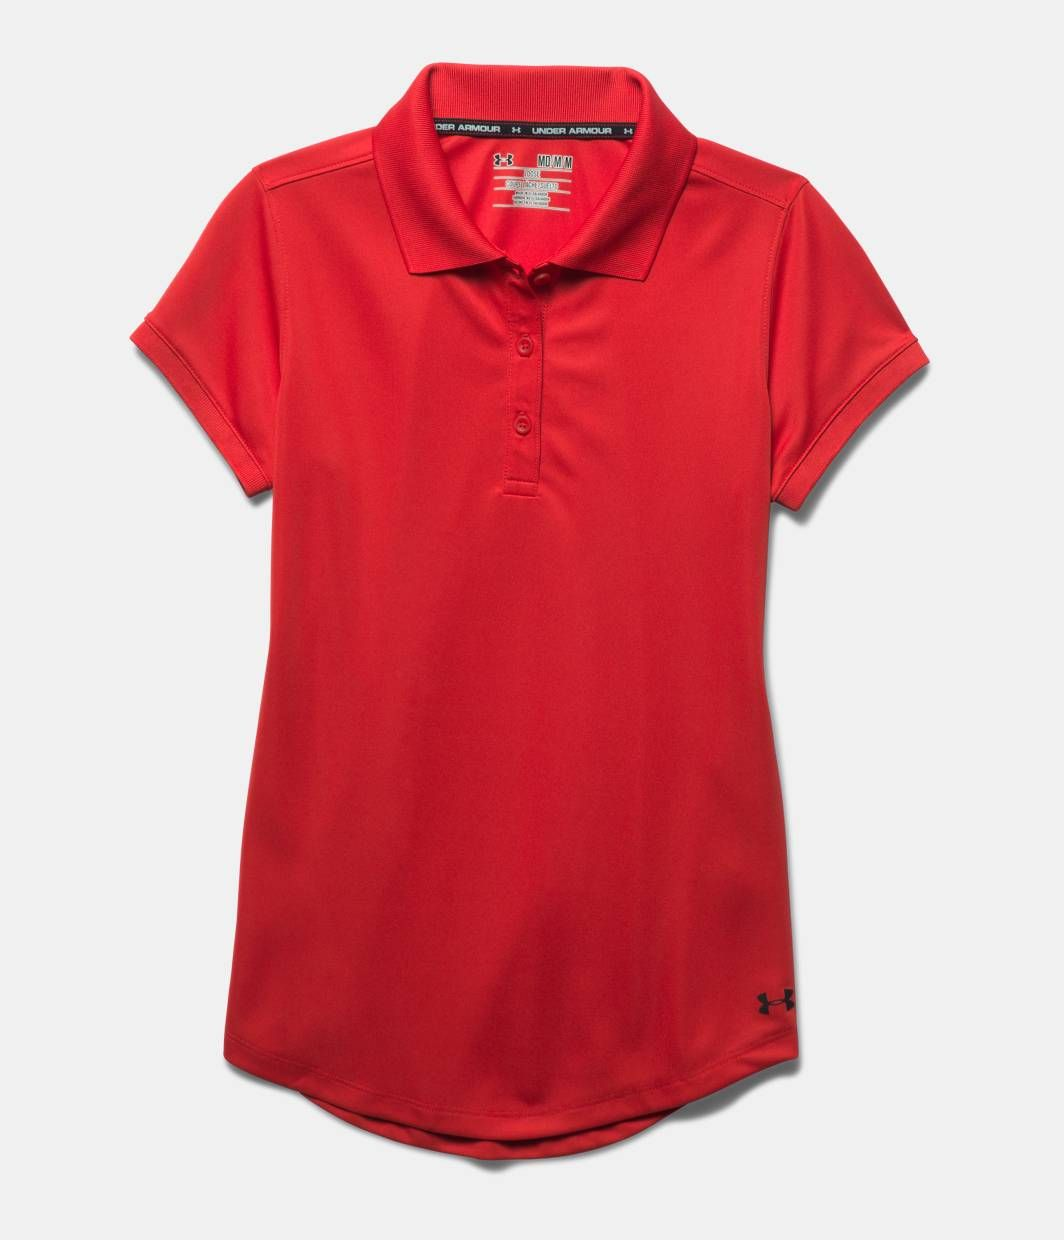 Shop Under Armour for Girls' UA Uniform Short Sleeve Polo in our Girls Tops department.  Free shipping is available in US.